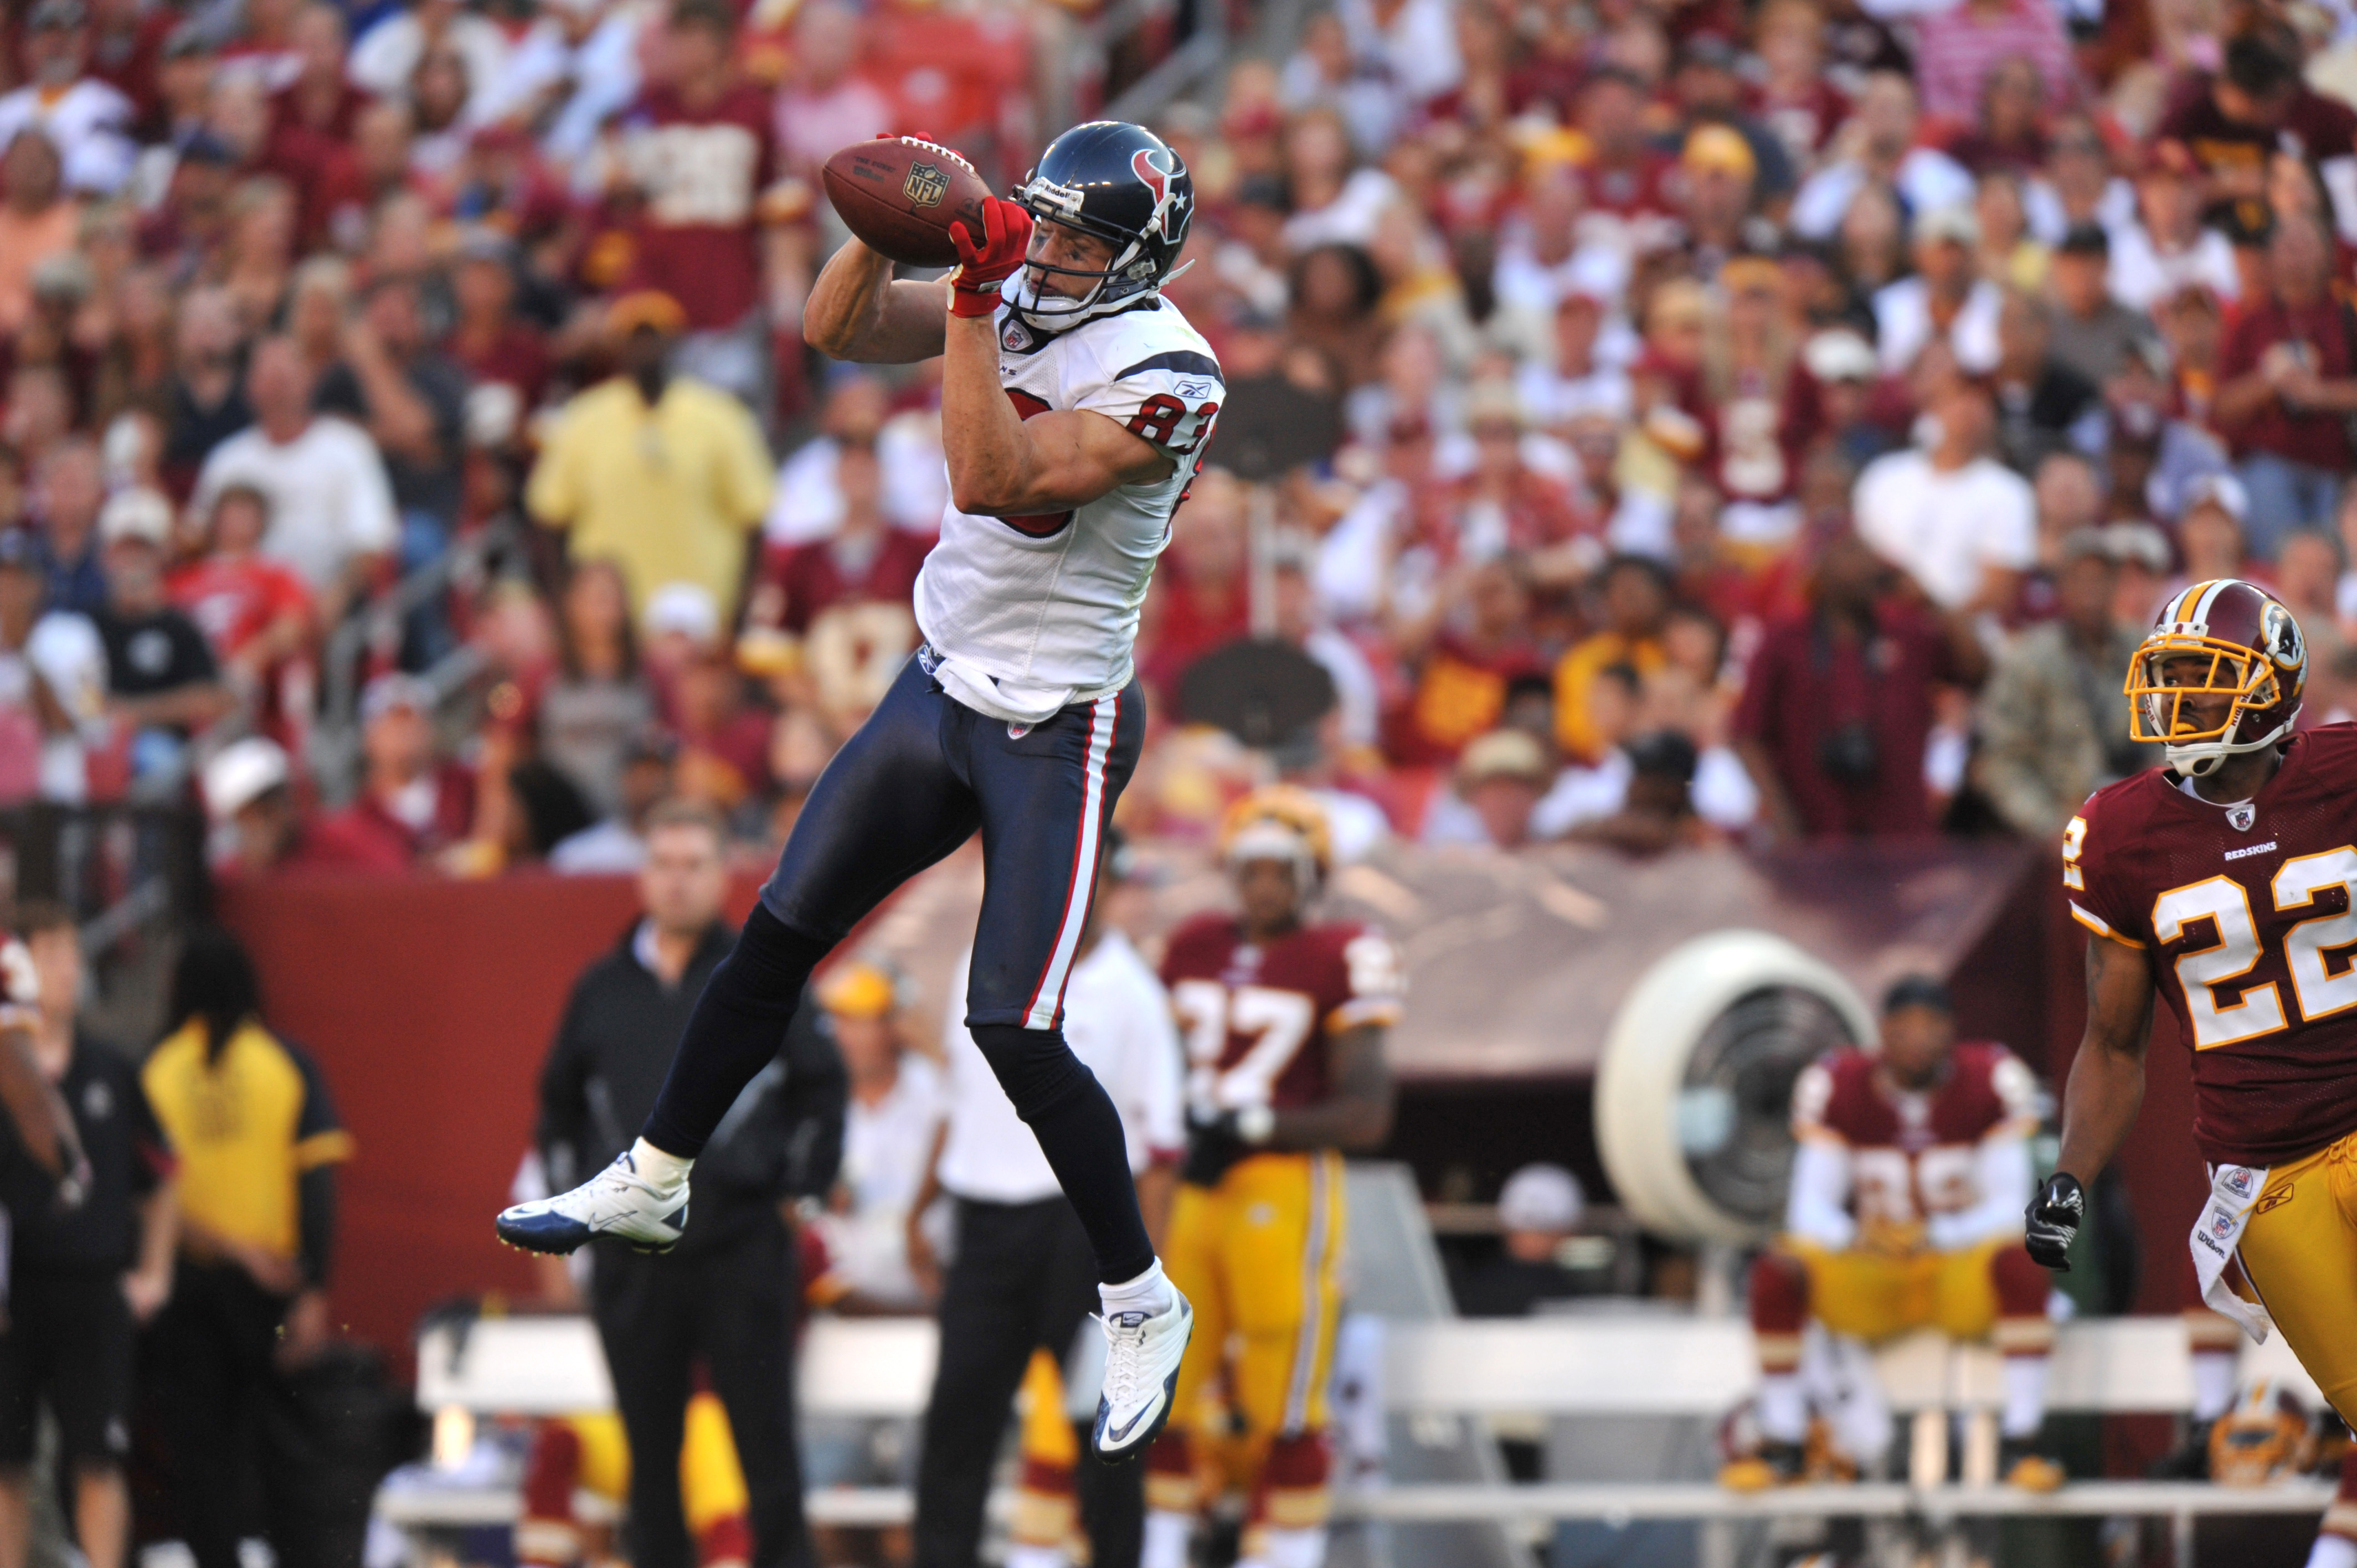 LANDOVER - SEPTEMBER 19:  Kevin Walter #83 of the Houston Texans makes a catch against the Washington Redskins at FedExField on September 19, 2010 in Landover, Maryland. The Texans defeated the Redskins 30-27 in overtime. (Photo by Larry French/Getty Imag